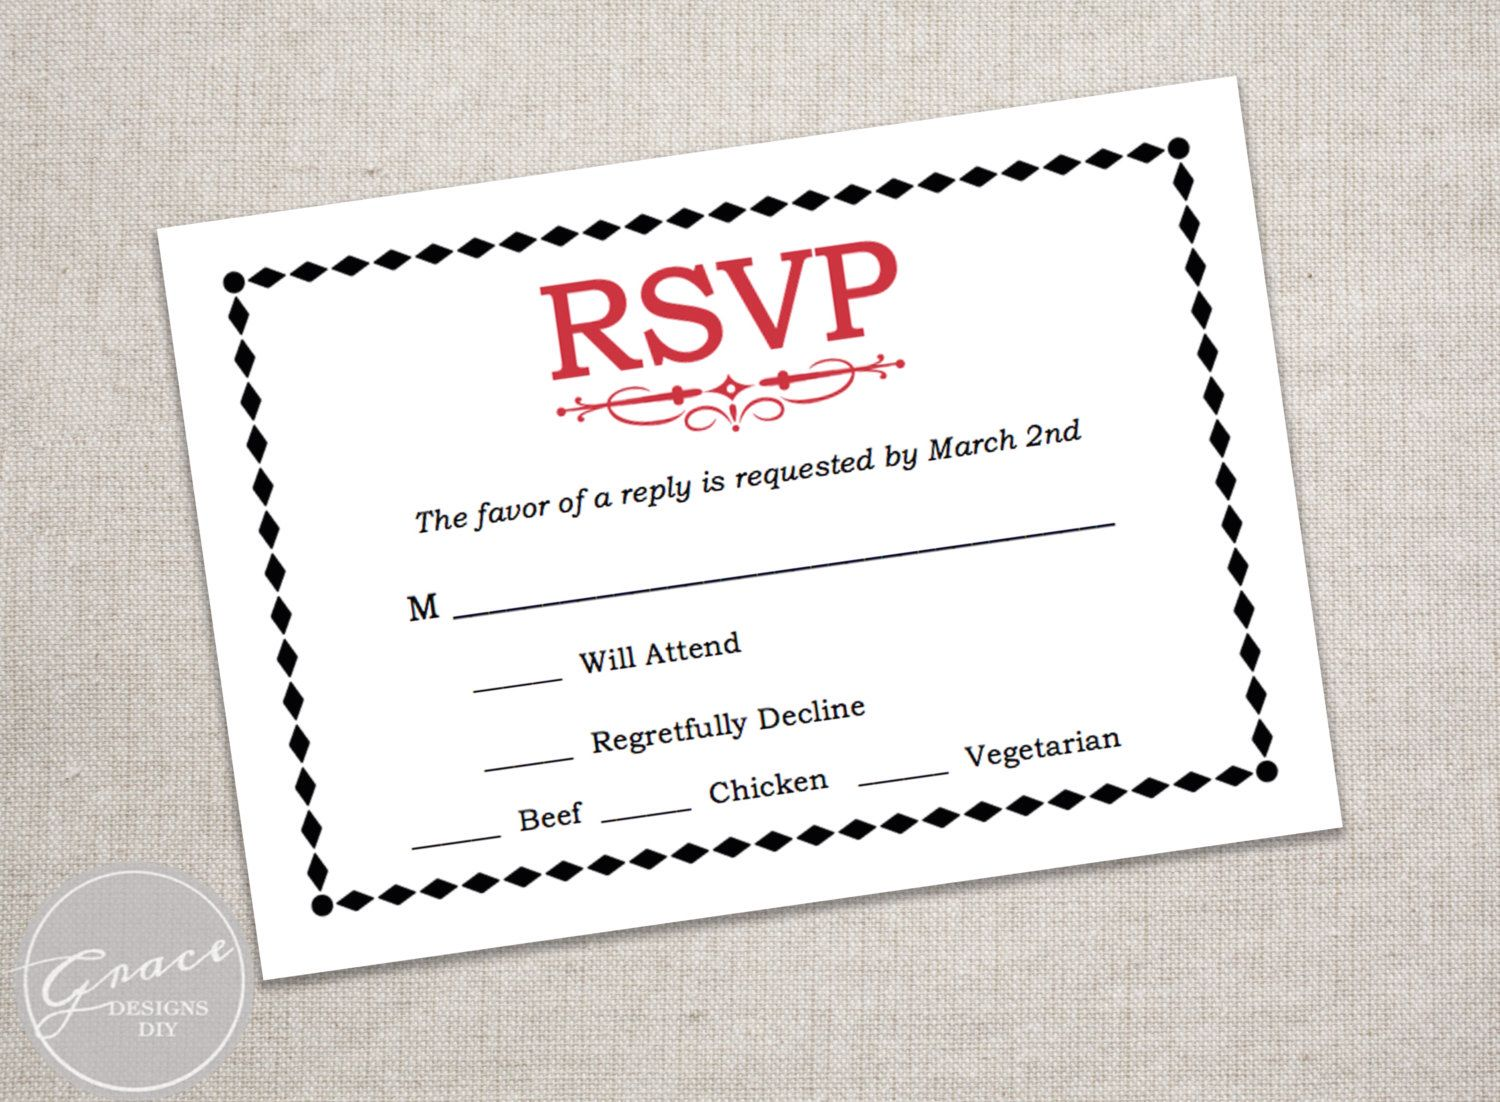 Casino Night Rsvp Card Printable Reply Card Editable Pdf Red Black Rsvp Instant Download Corporate Party 3 5 X 5 Inches Gd3102 Rsvp Card Invitation Kits Reply Cards